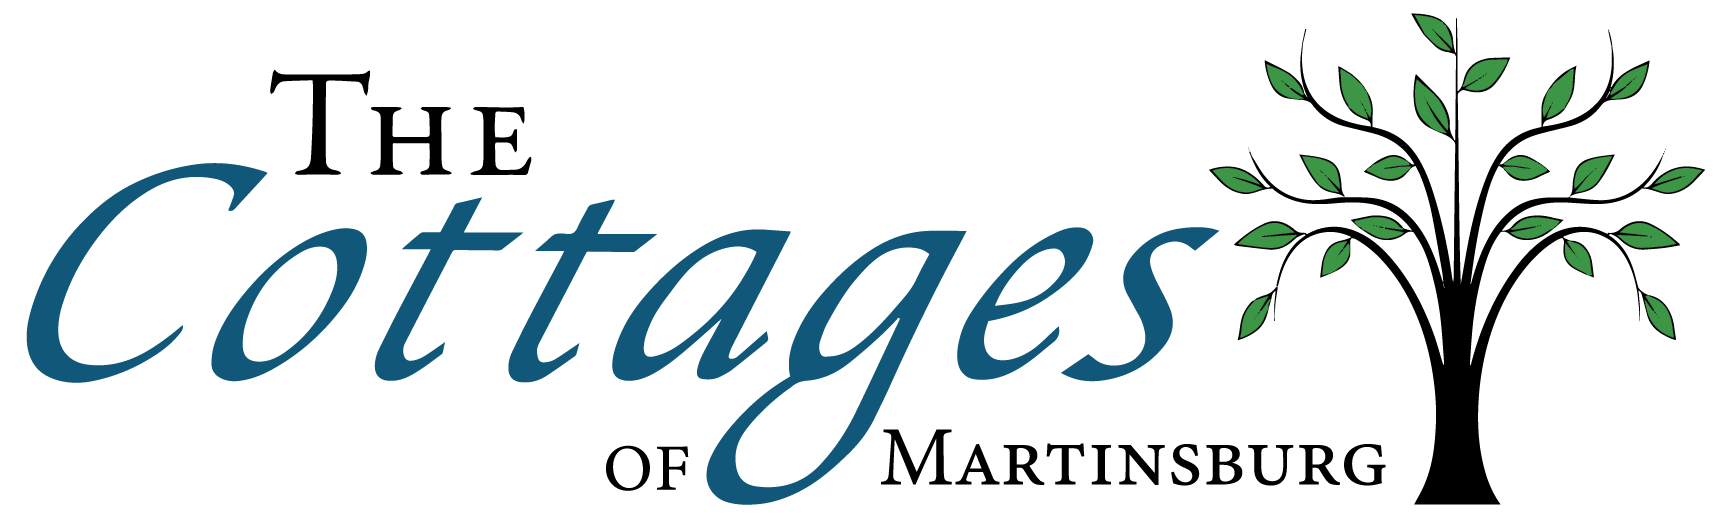 Cottages of Martinsburg Logo